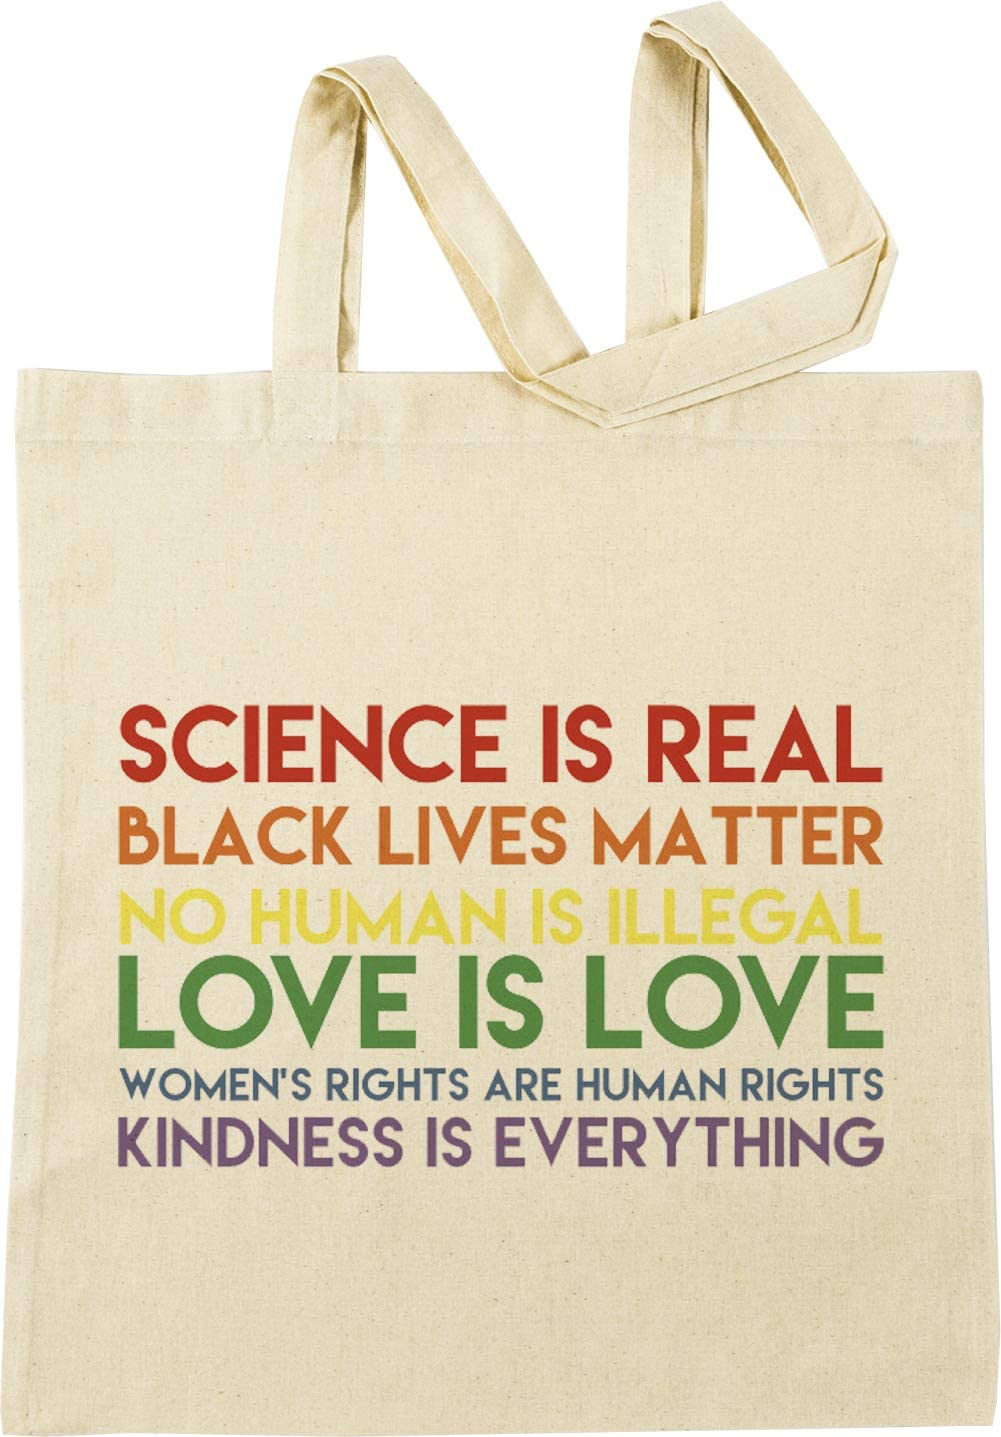 Science Is Real Black Lives Matter No Human Is Illegal Love Is Love Women S Rights Are Human Rights Kindness Is Everything Beige Einkaufstasche Küche Haushalt